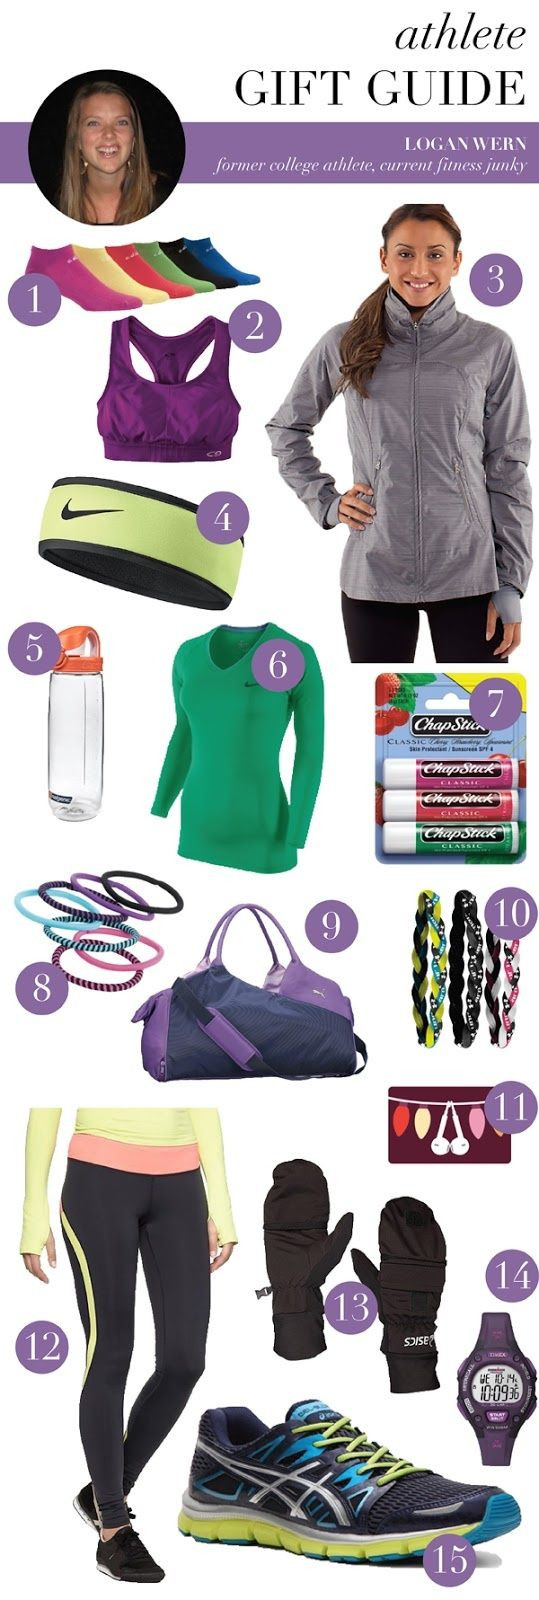 Best ideas about Gift Ideas For Athletes . Save or Pin 11 best Gift Ideas for Athletes images on Pinterest Now.